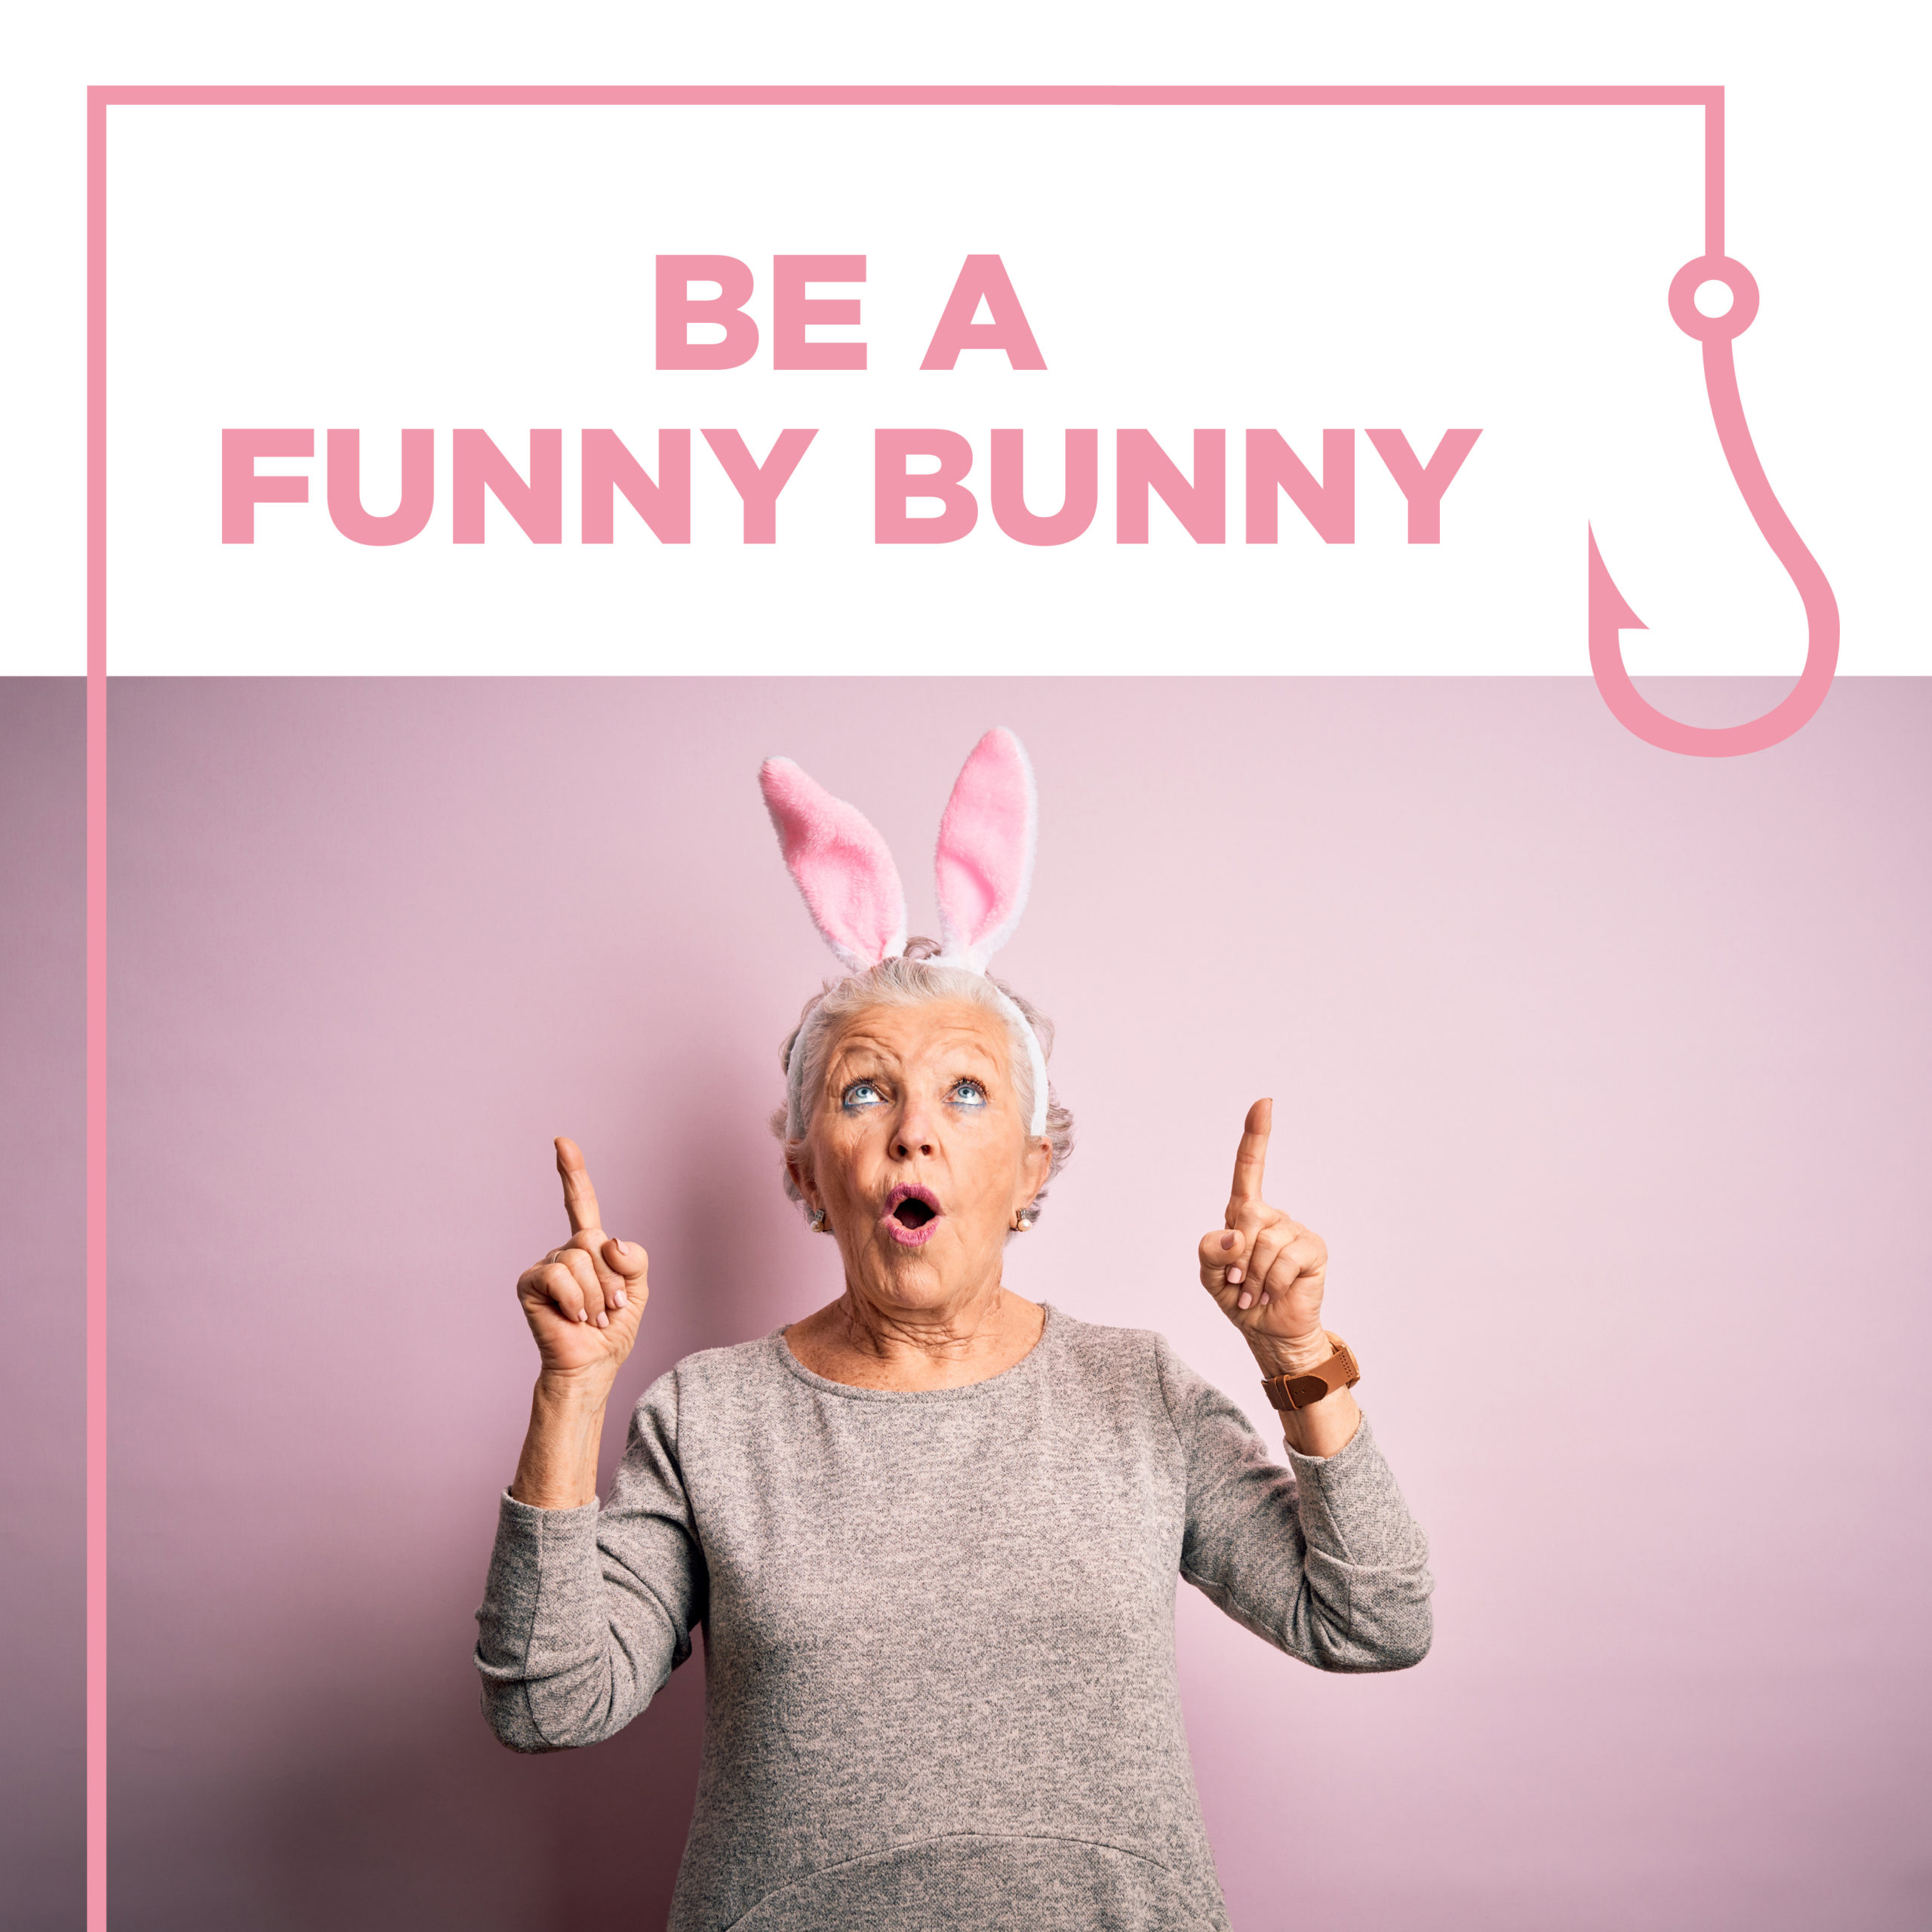 Be a Funny Bunny Competition - Whale Coast Mall